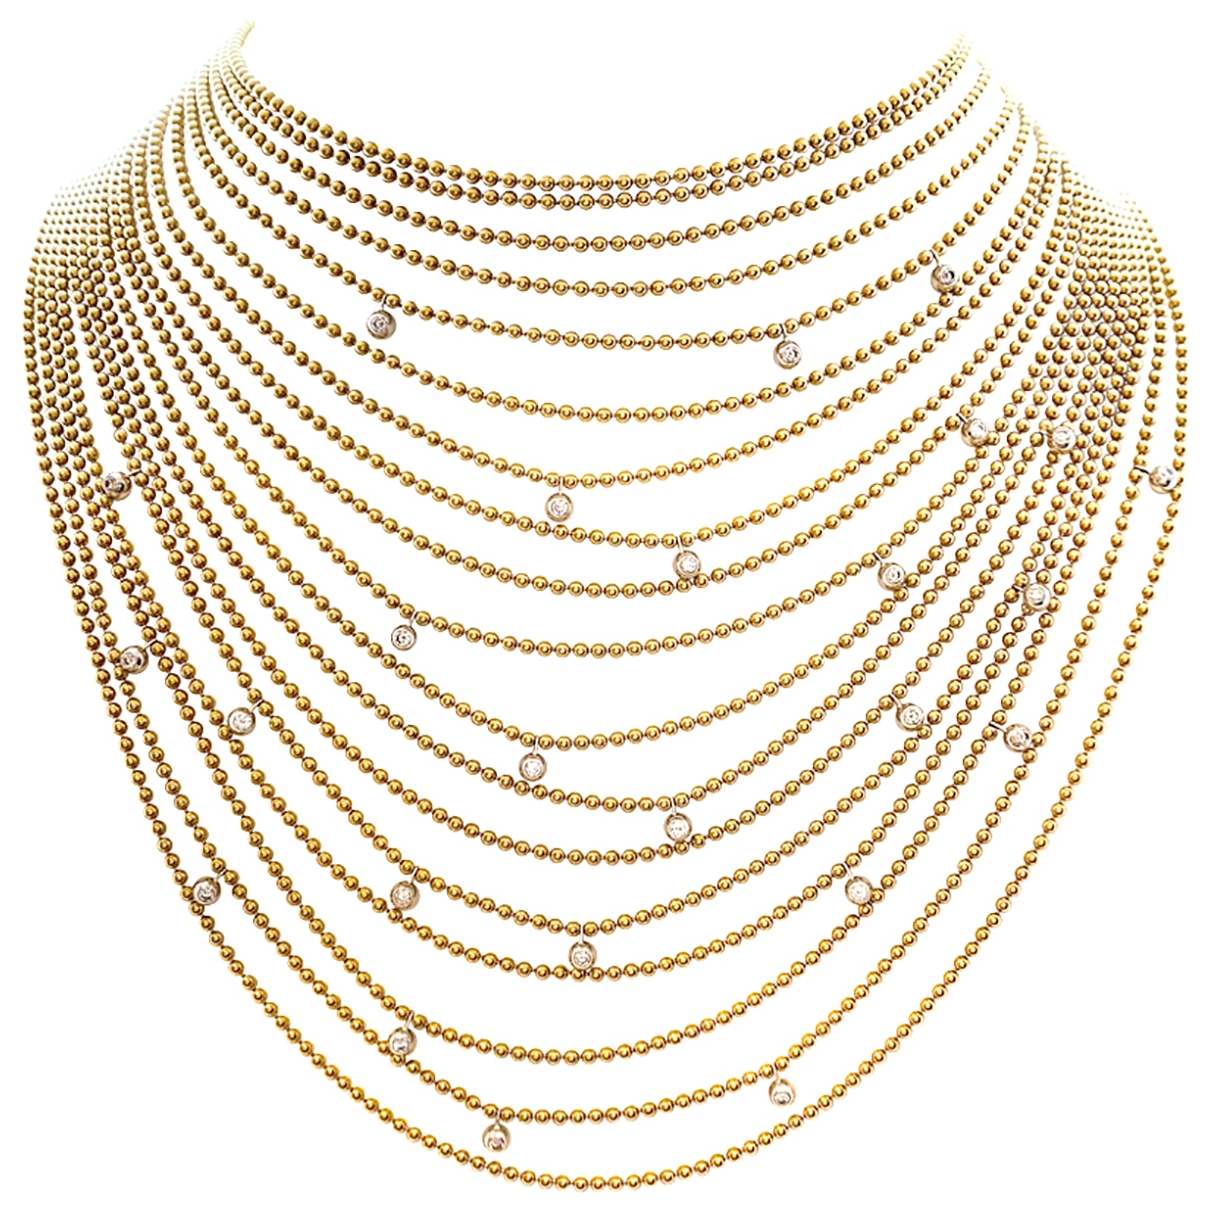 Cartier \N White gold Long necklace for Women \N